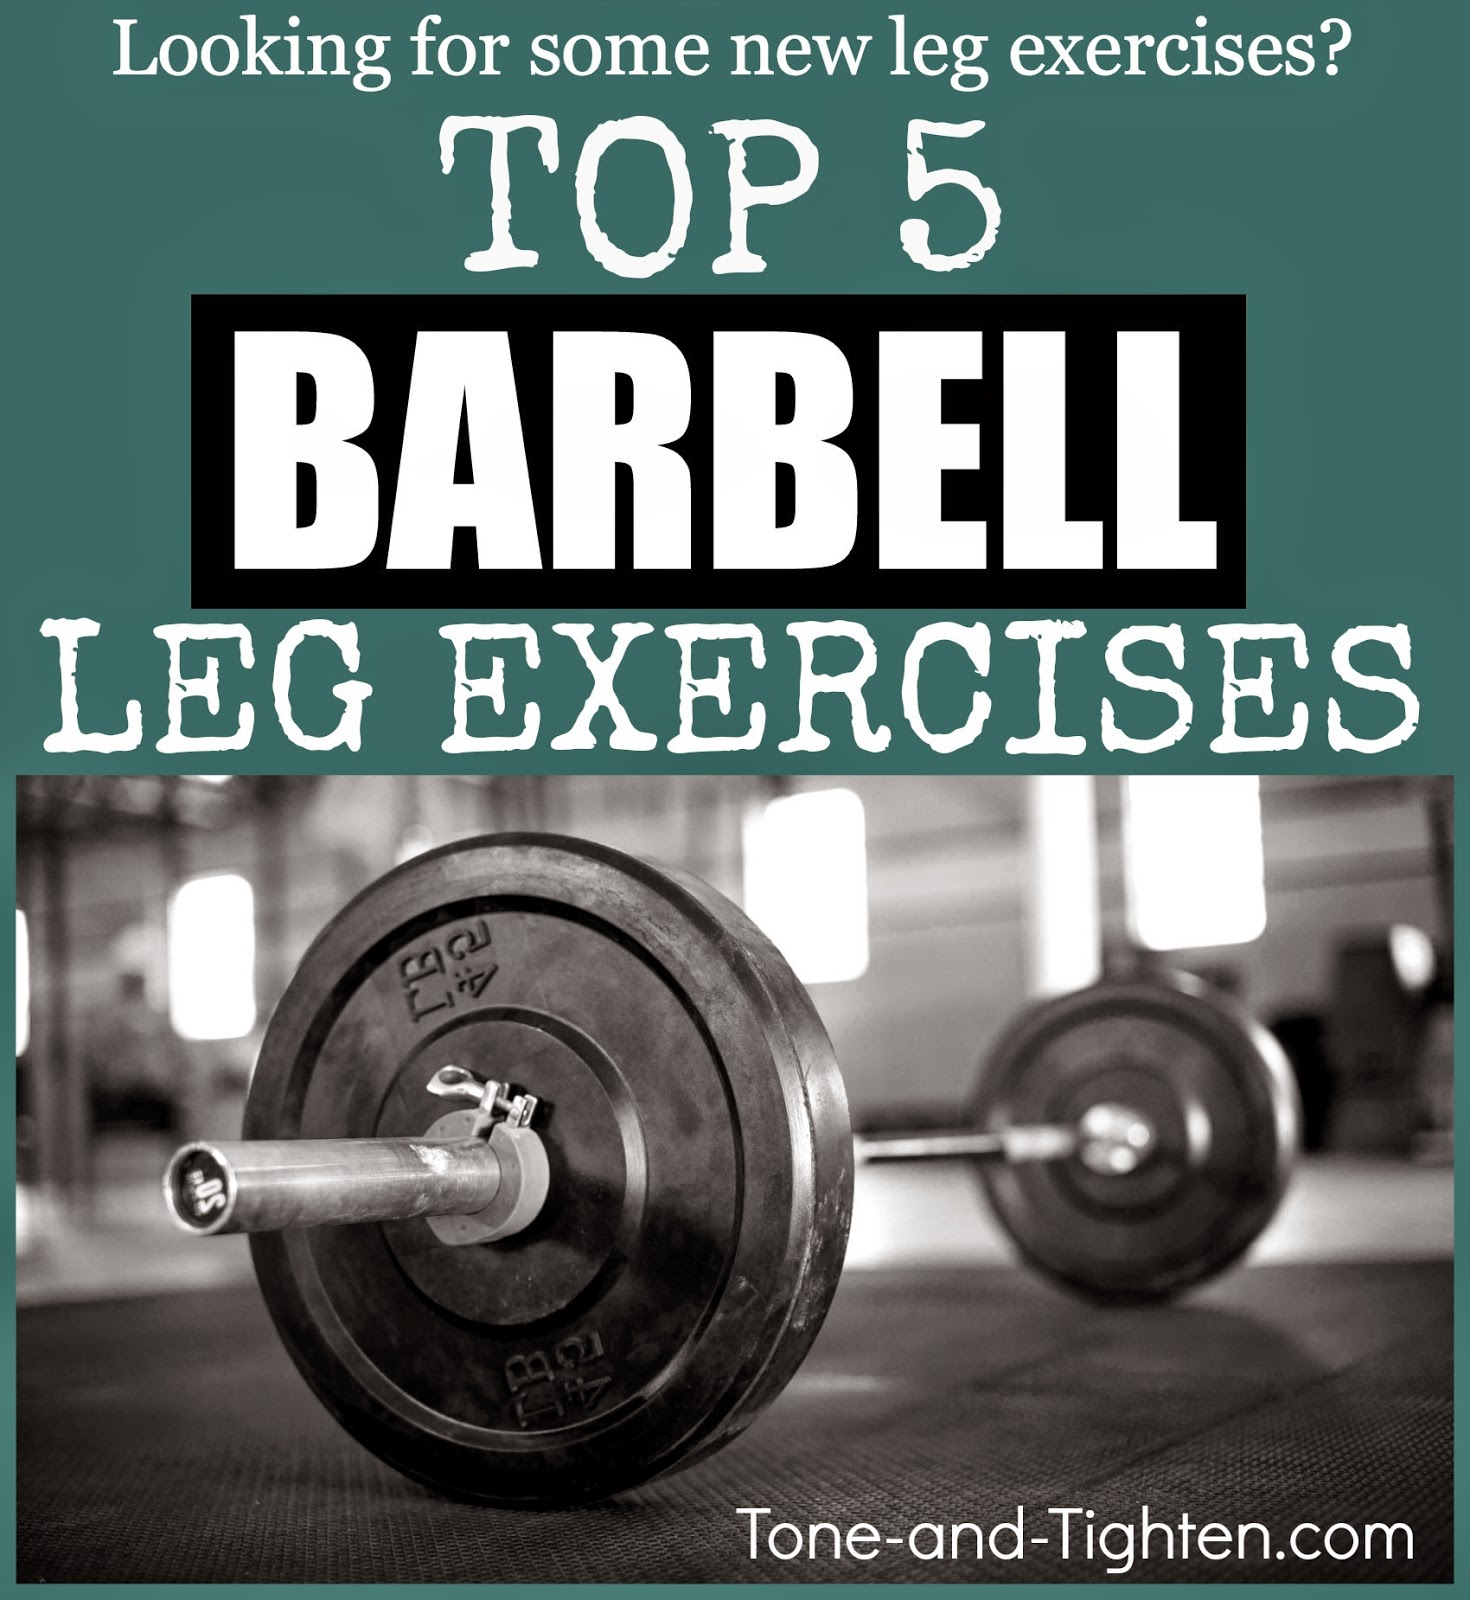 http://tone-and-tighten.com/2014/03/best-barbell-exercises-for-your-legs-5-moves-everyone-must-use-regularly.html